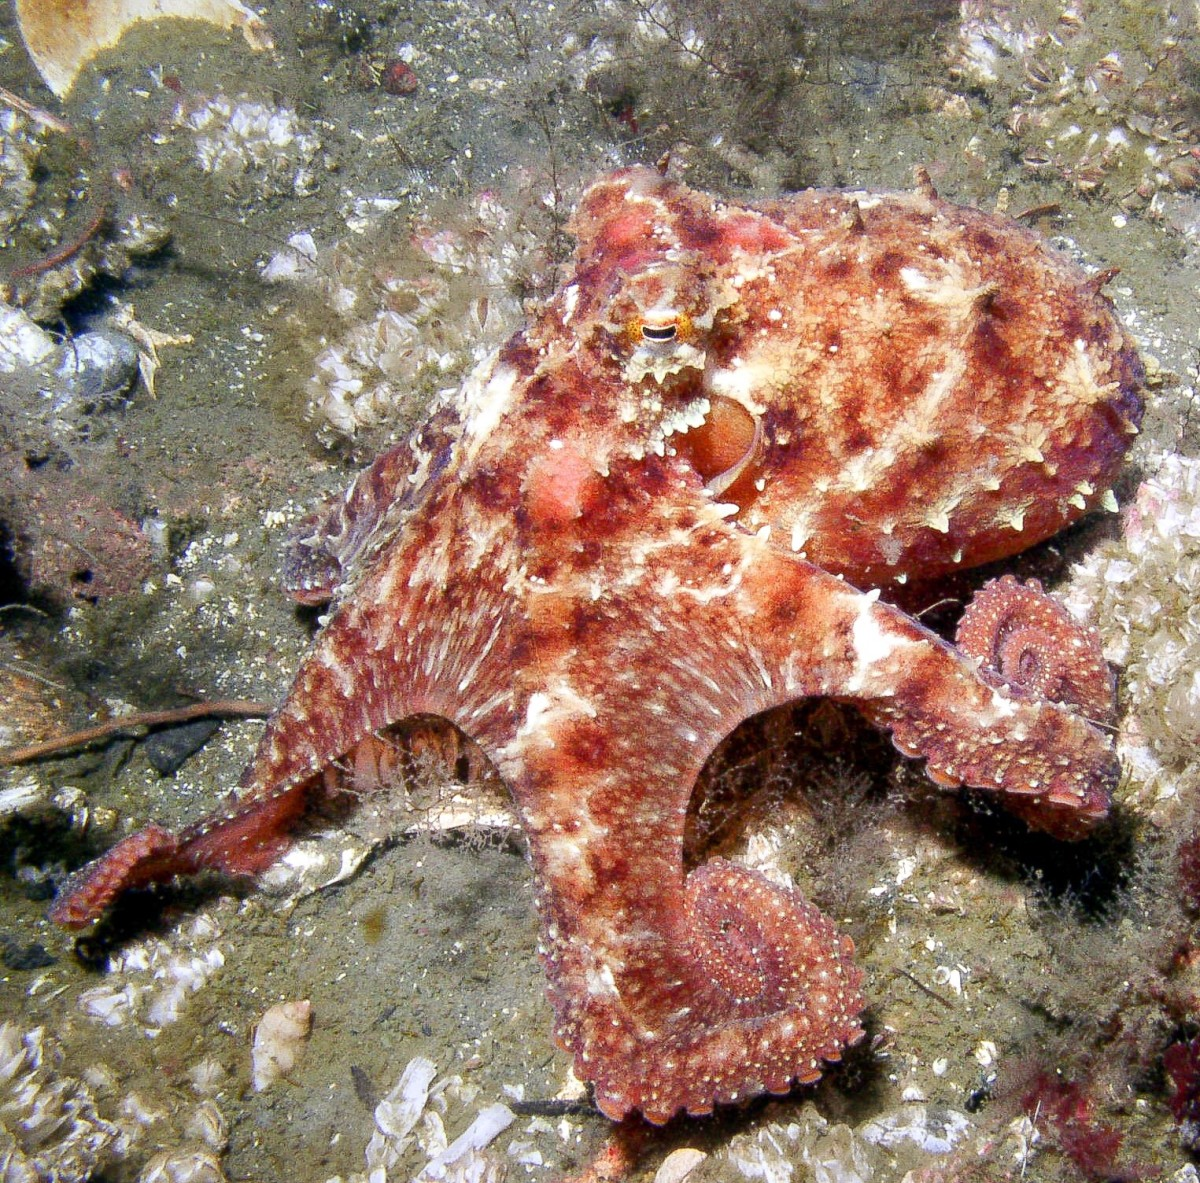 The East Pacific red octopus (Octopus rubescens) can be found off the coast of California and in other areas.